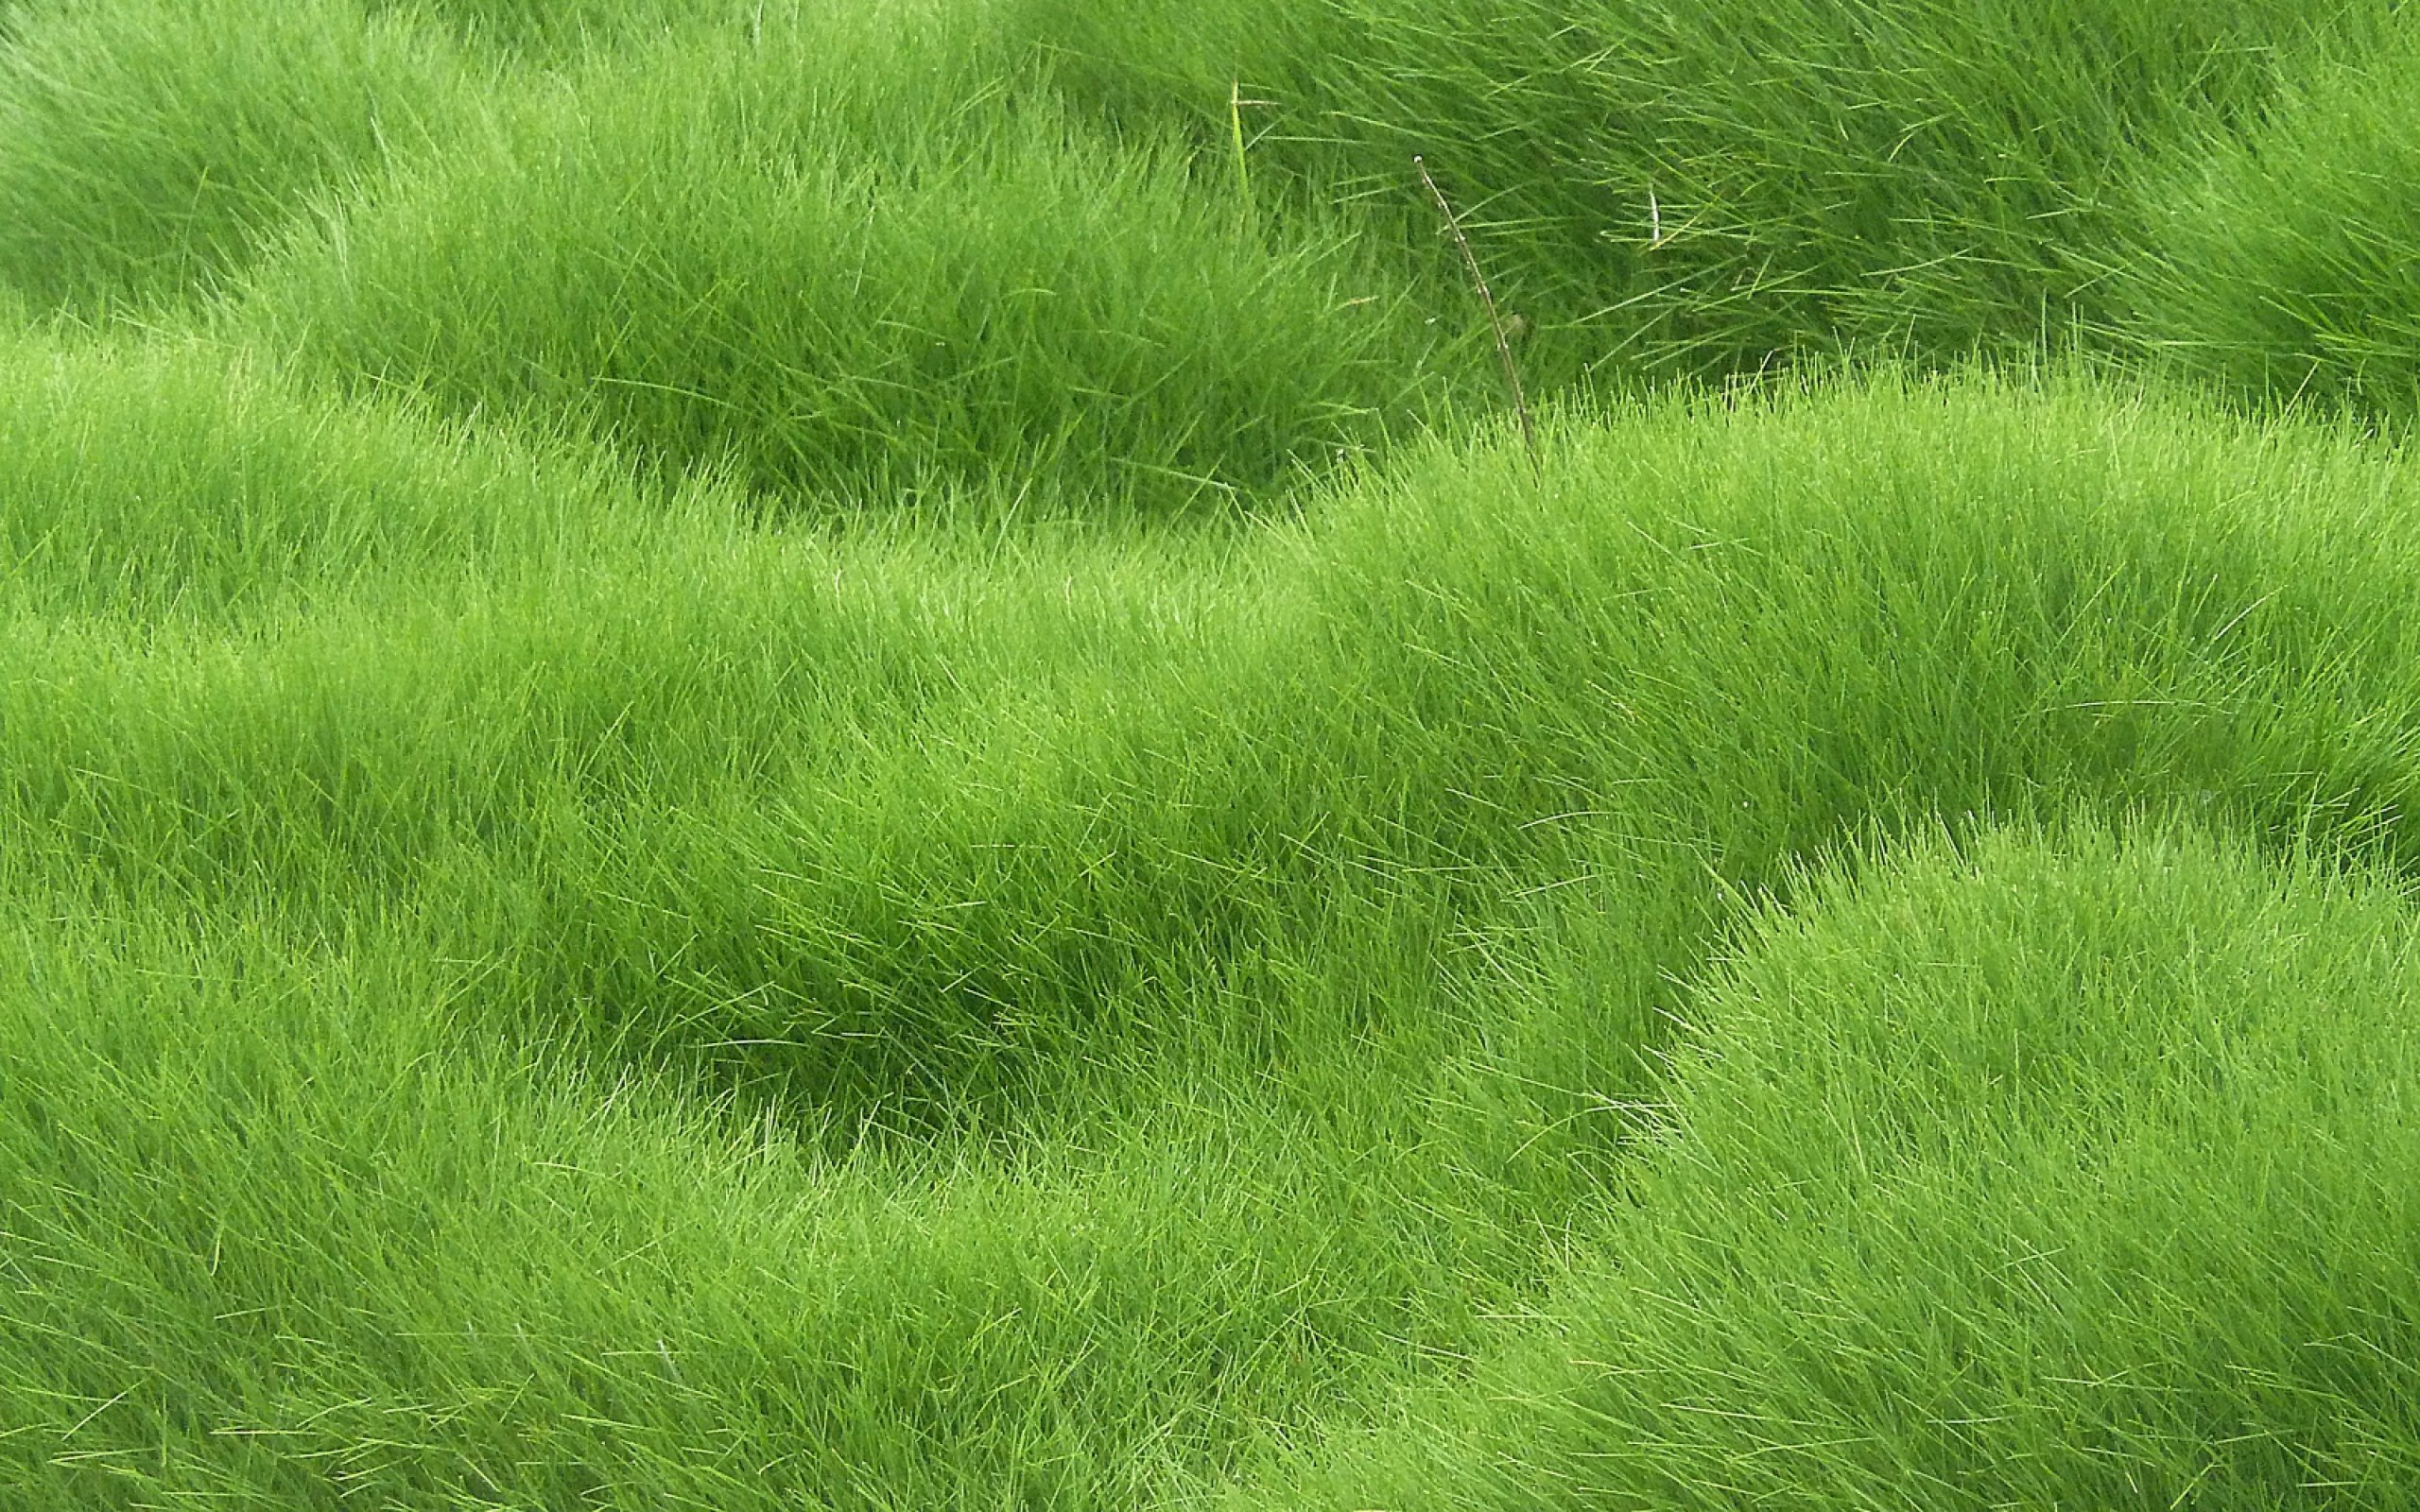 grass texture hd perspective grass texture free photo nature outdoor natural download